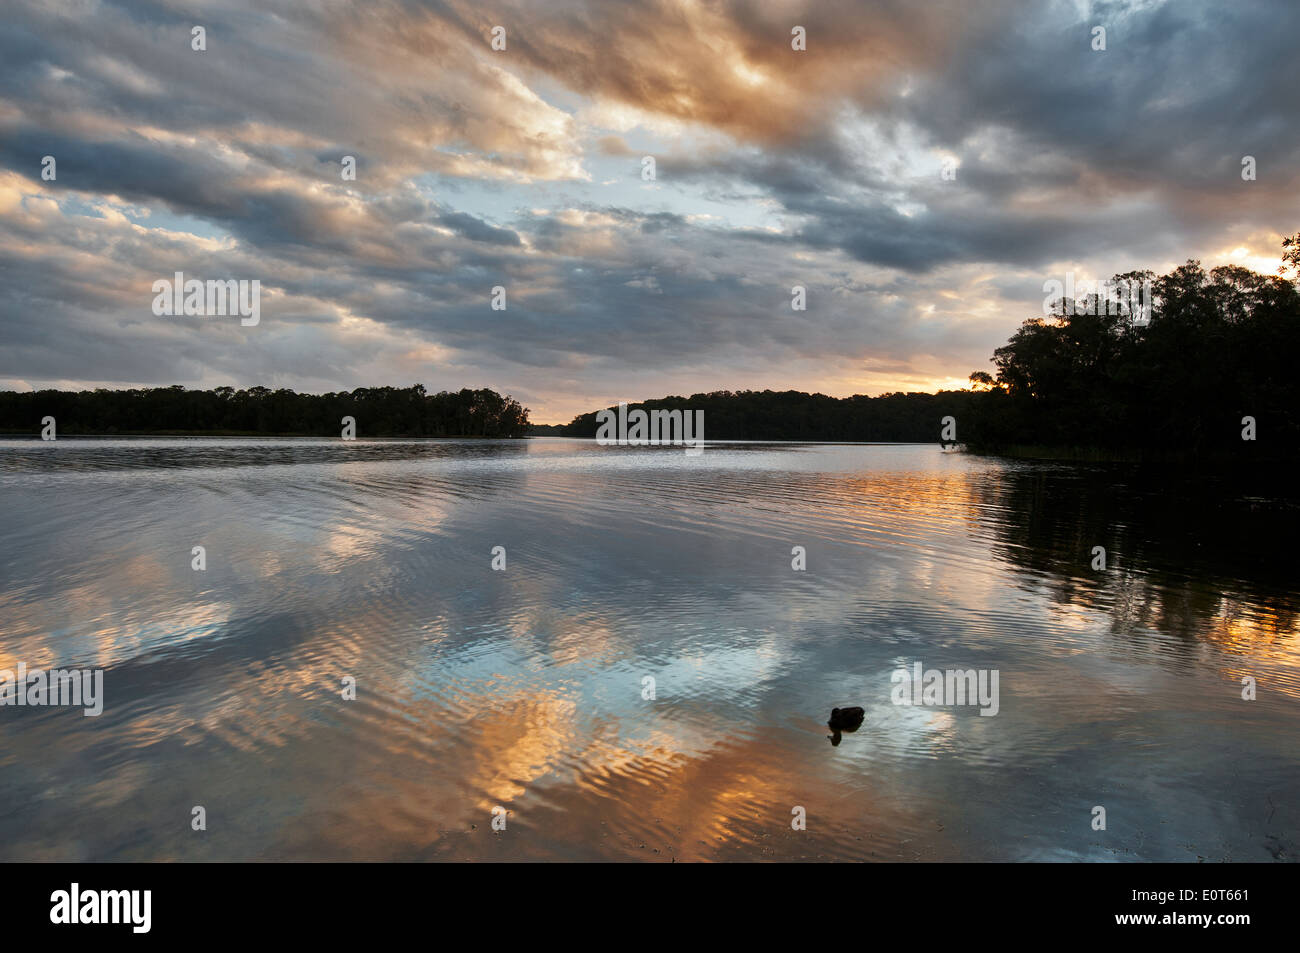 Sunset reflections at Myall Lakes. - Stock Image